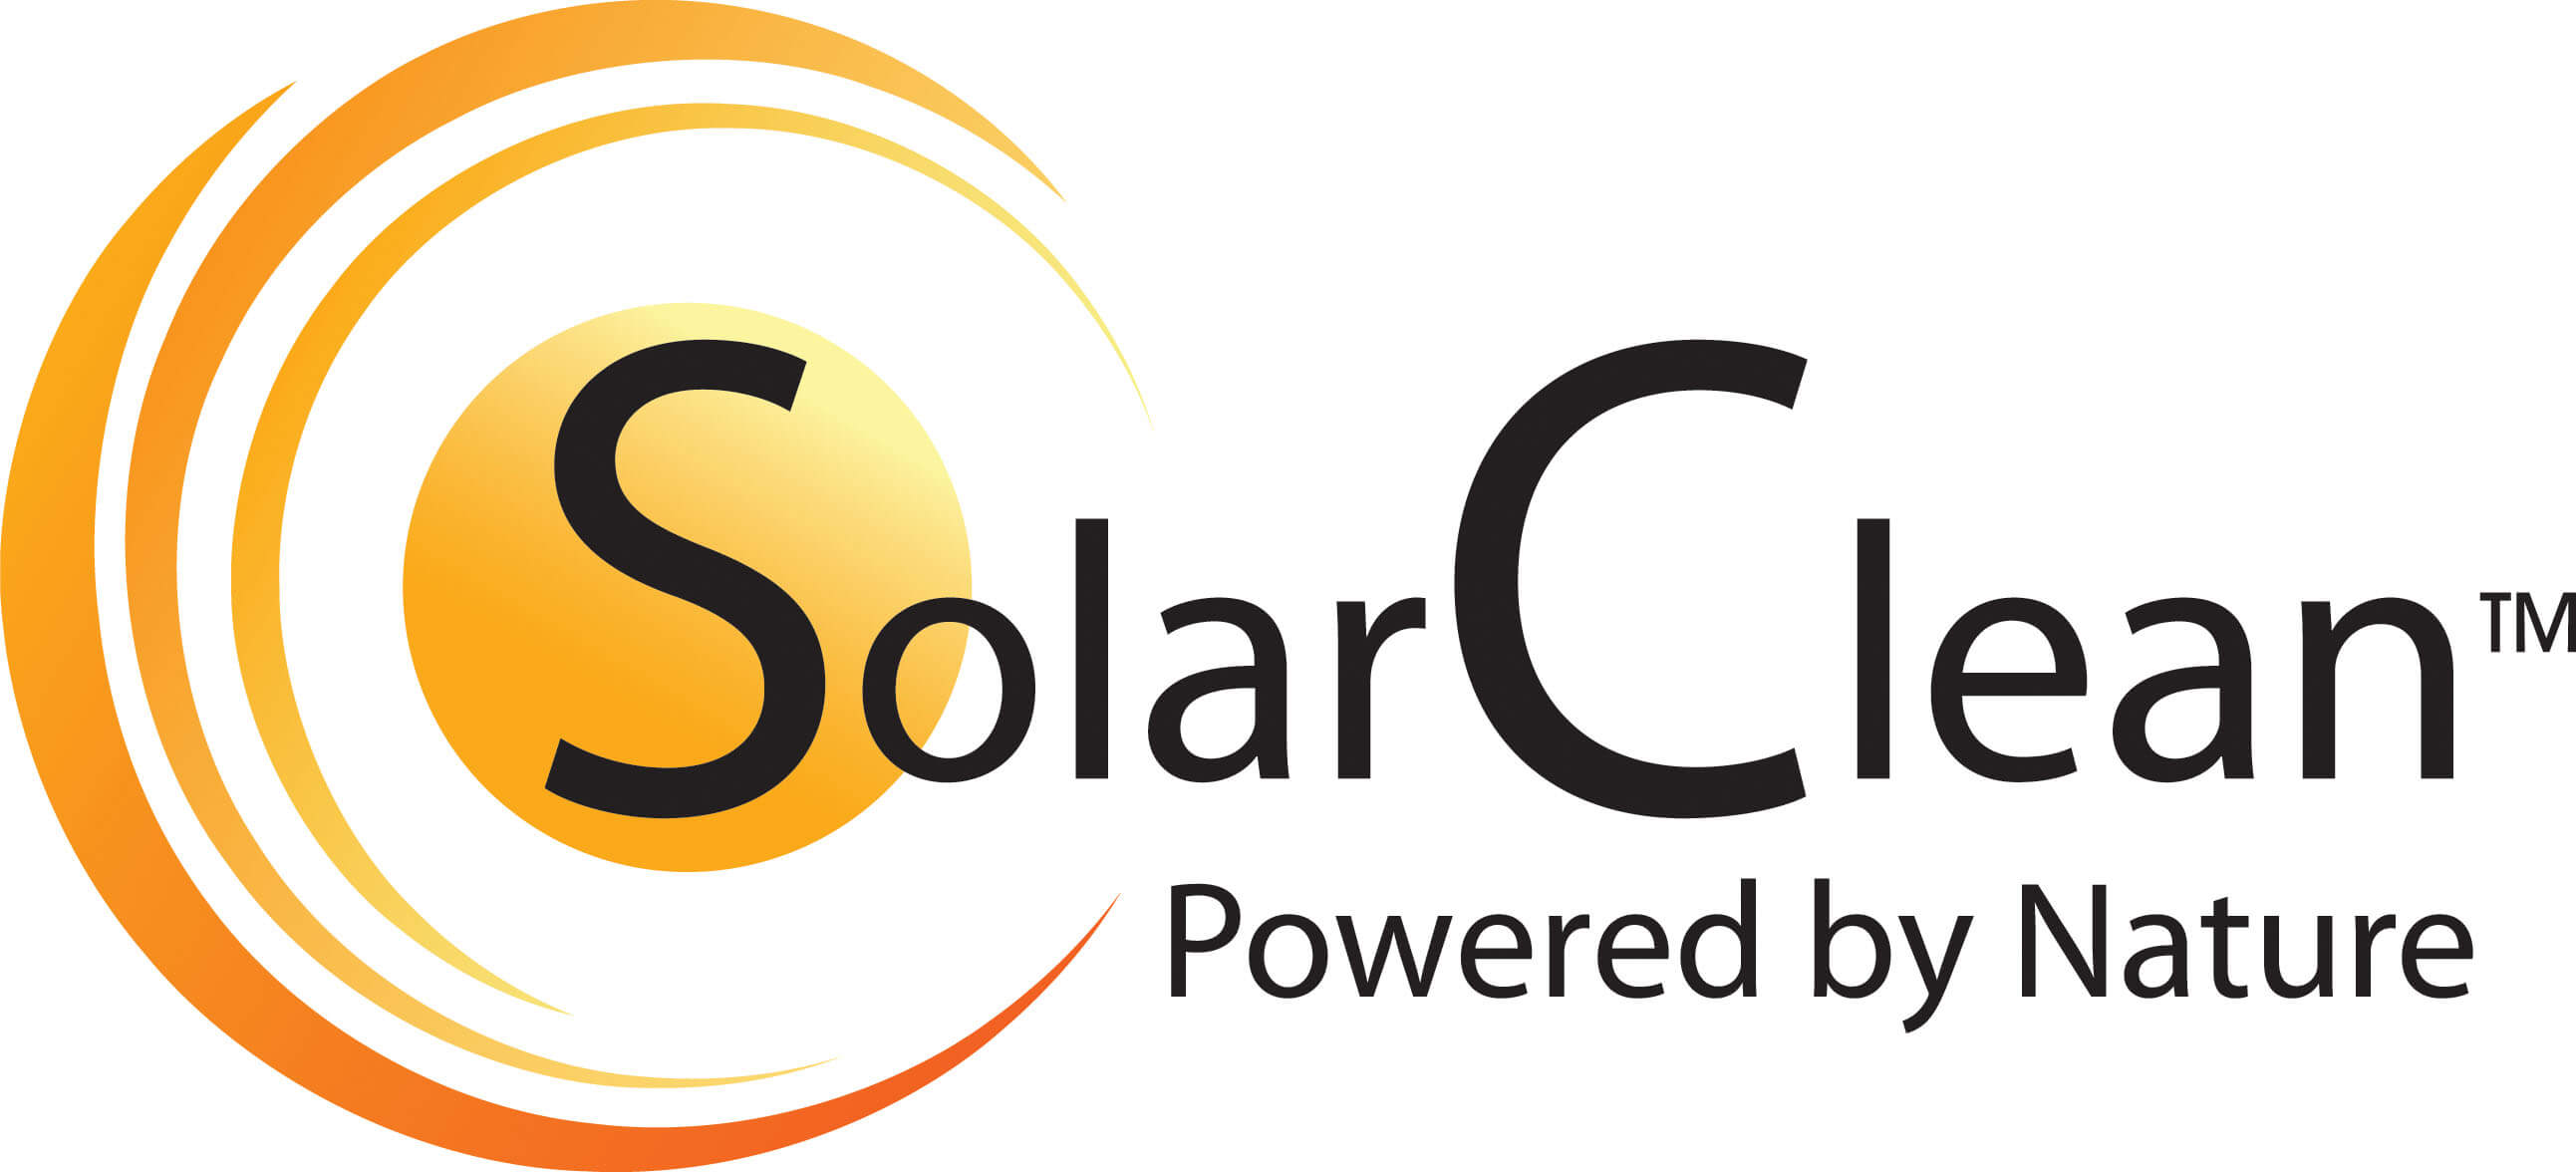 Solar Clean - Powered by Nature